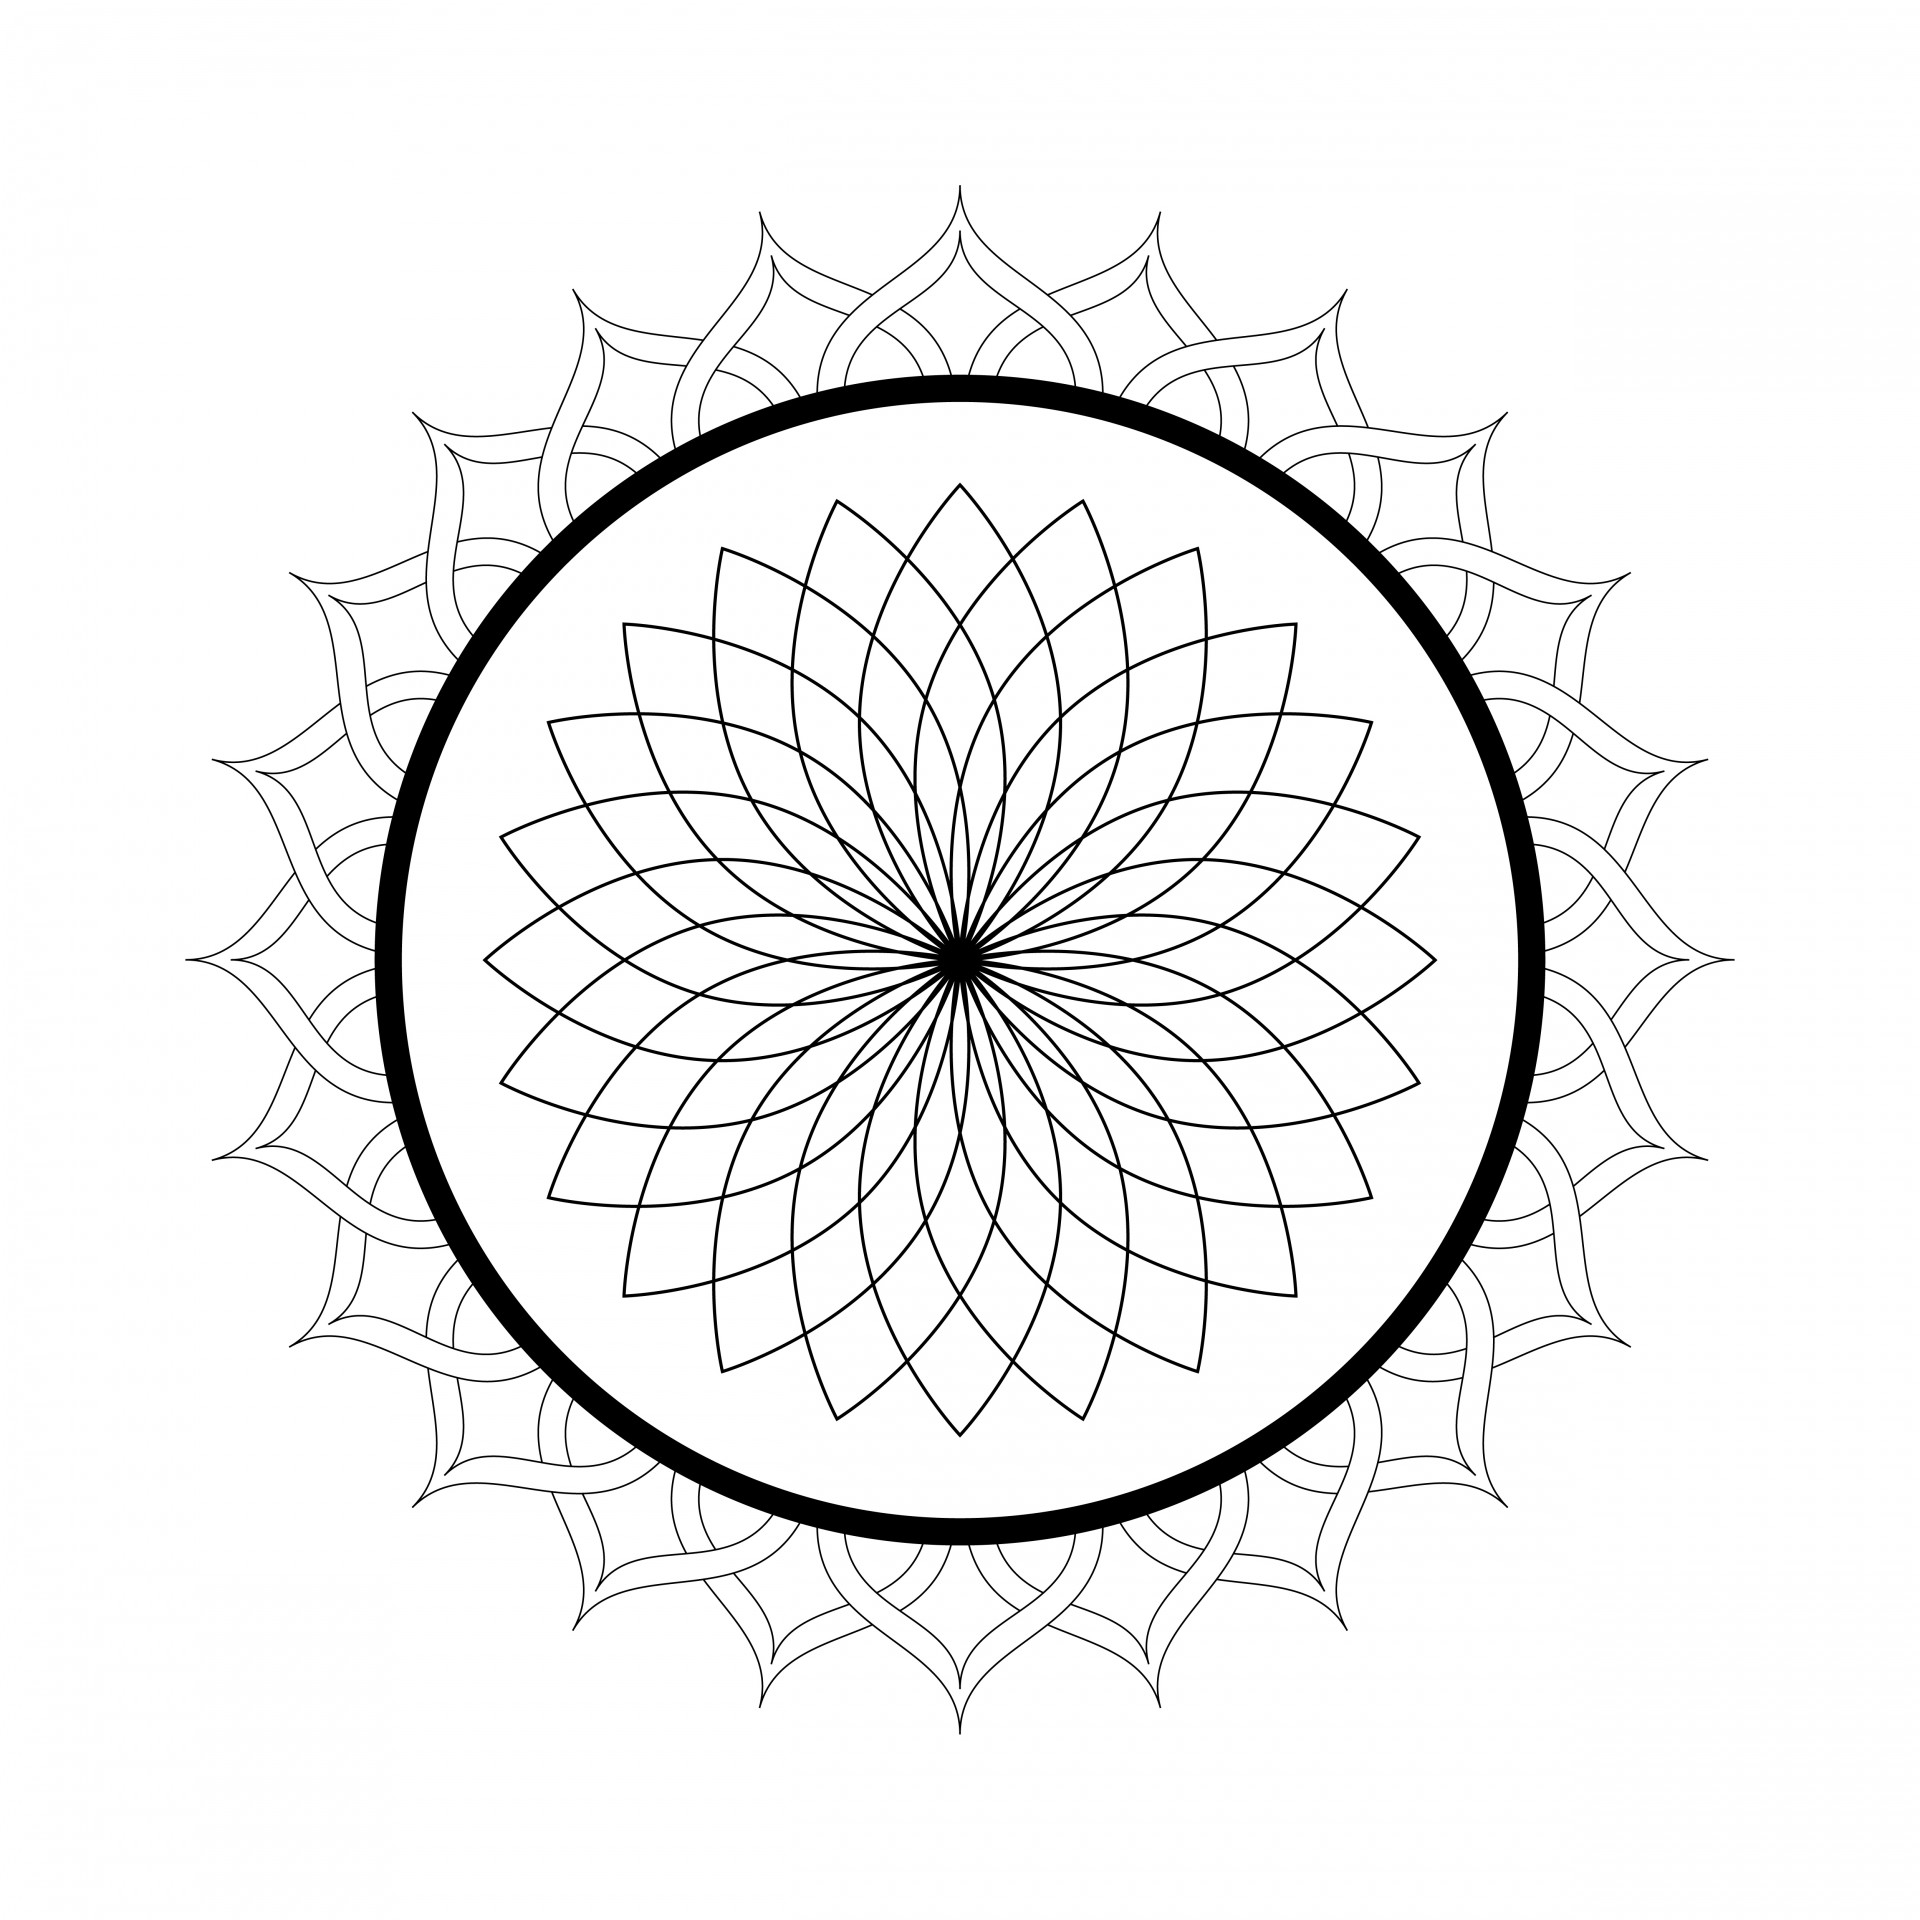 free mandala coloring pages for adults free printable adult floral mandala coloring page 71 coloring adults pages for mandala free